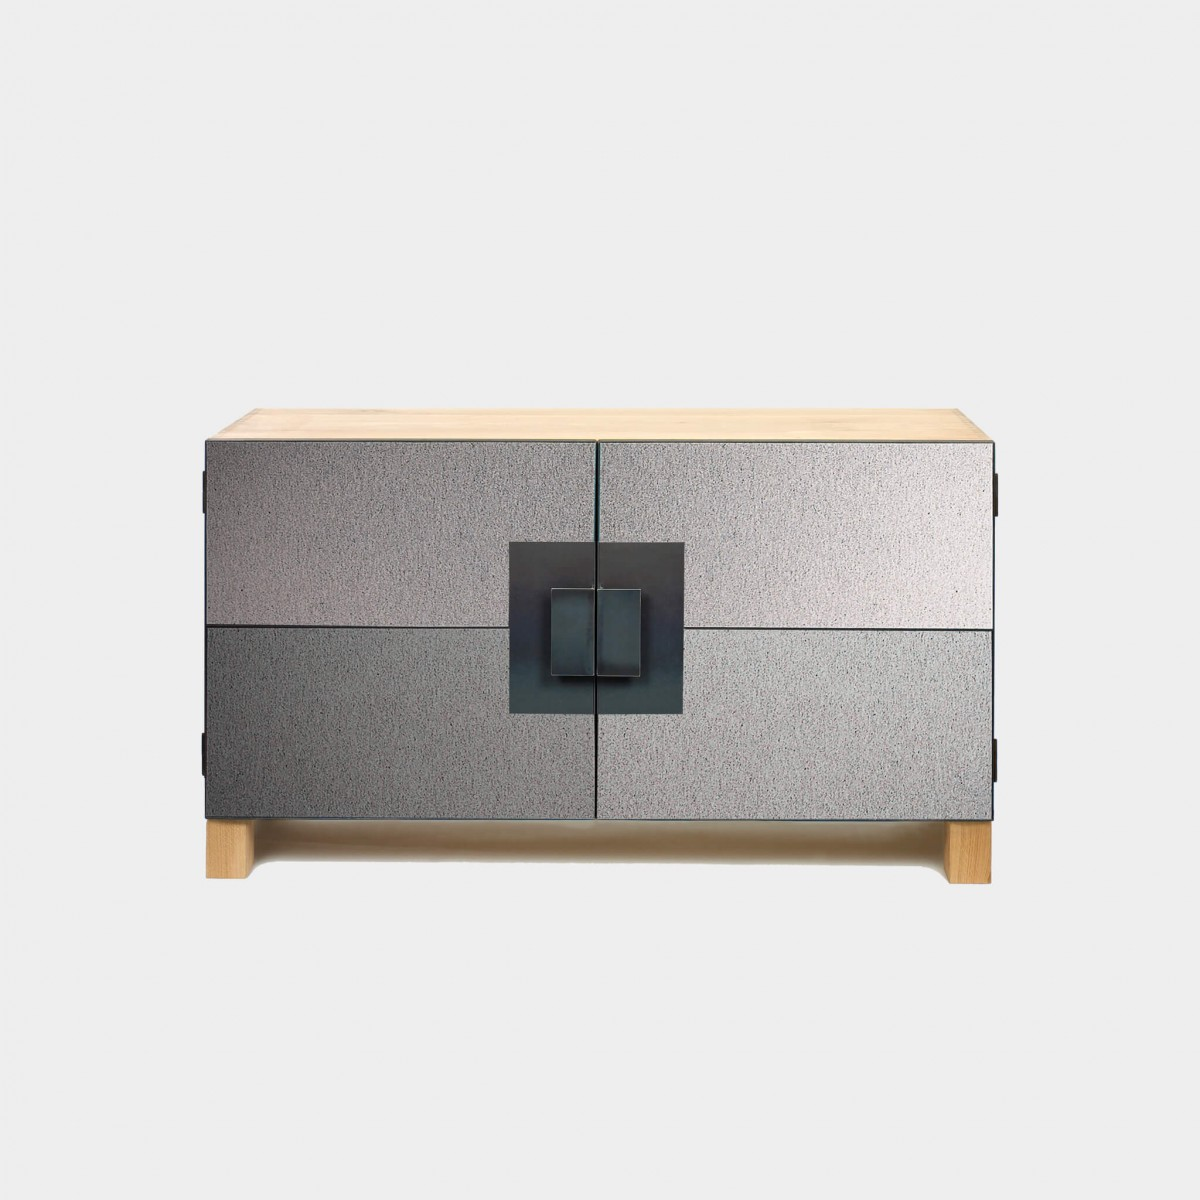 lambert morton sideboard filz naturgrau meliert zawoh. Black Bedroom Furniture Sets. Home Design Ideas